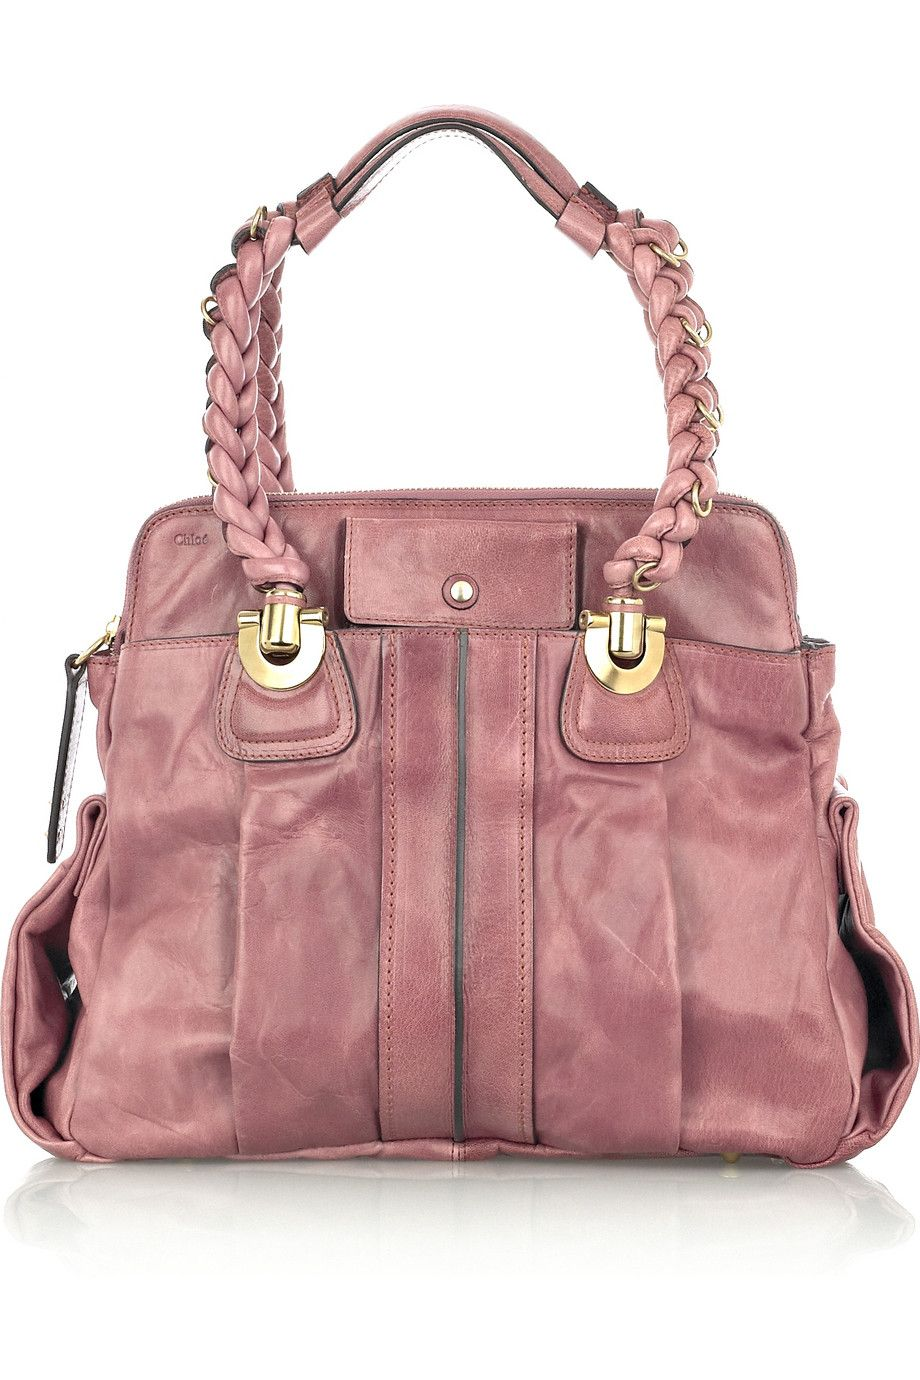 ee19f67268fa Chloe Heloise Large shoulder bag  1670